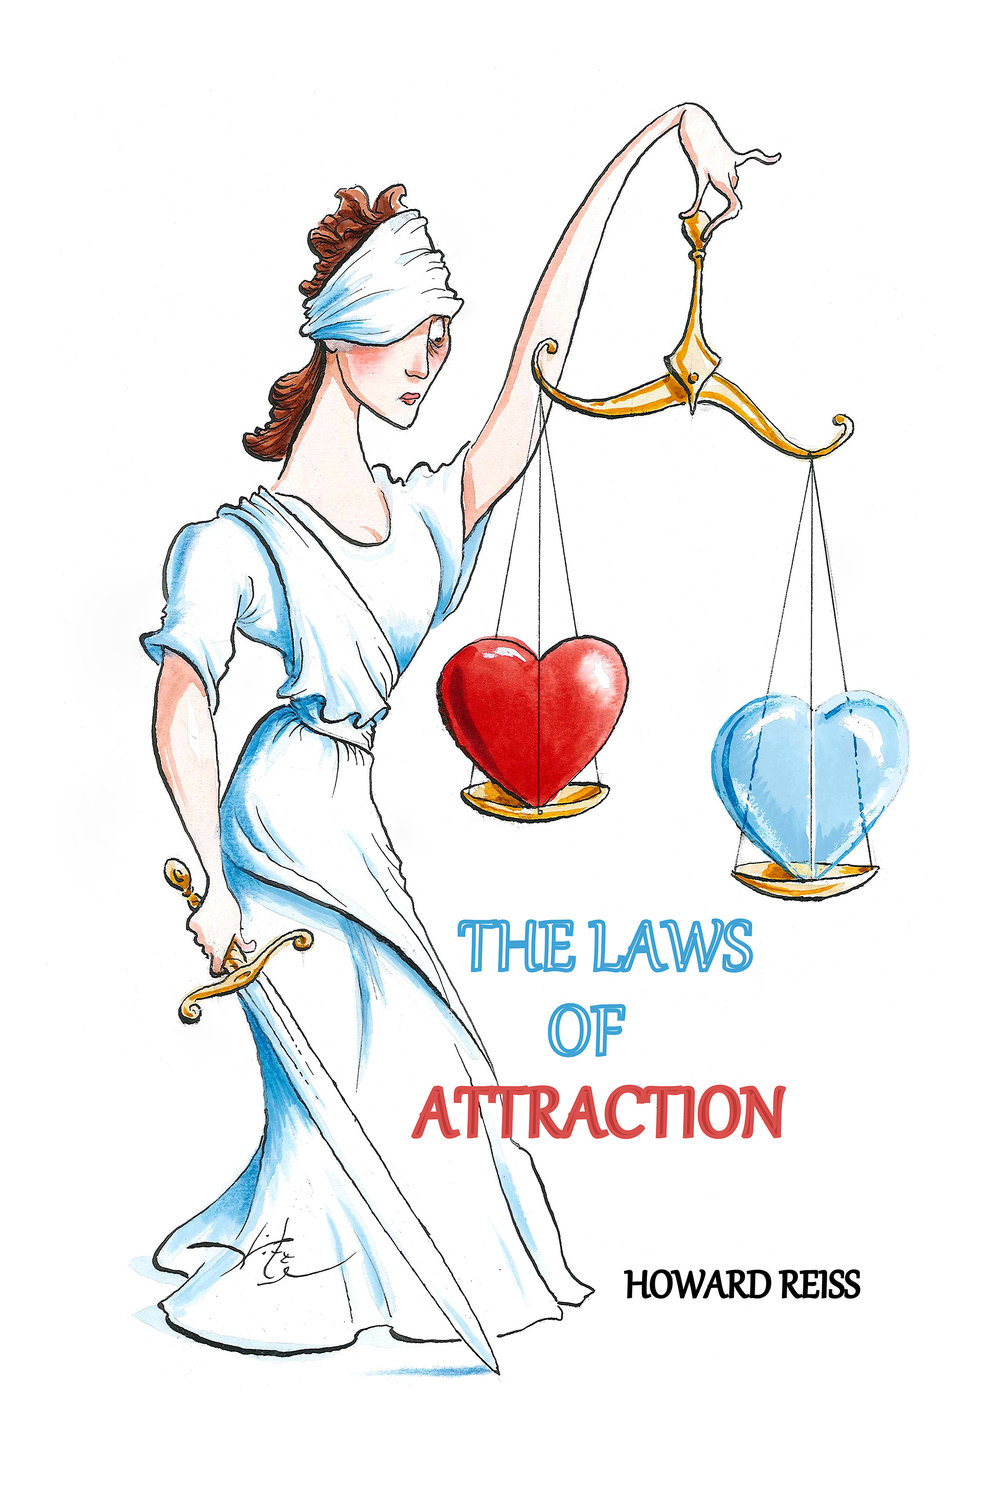 The Laws of Attraction  - Readers' Favorite gives The Laws of Attraction 5 stars! This is